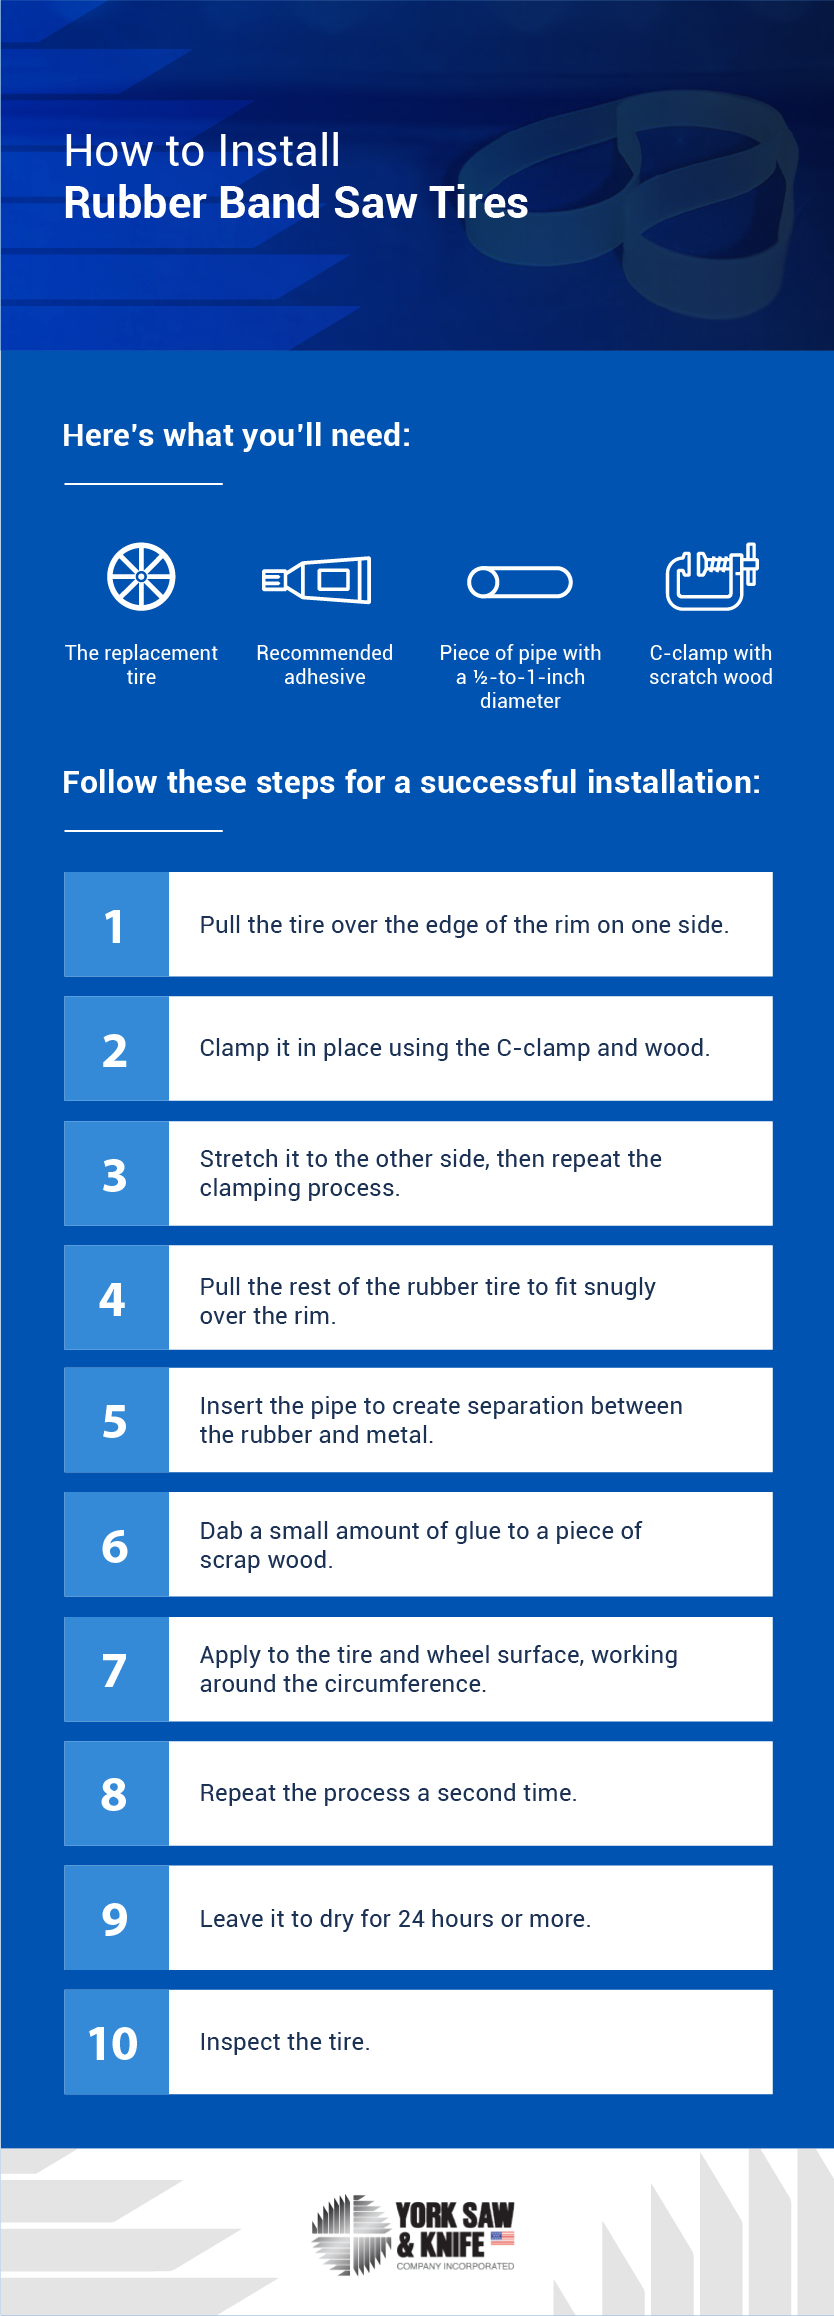 how to install a bandsaw tire infographic